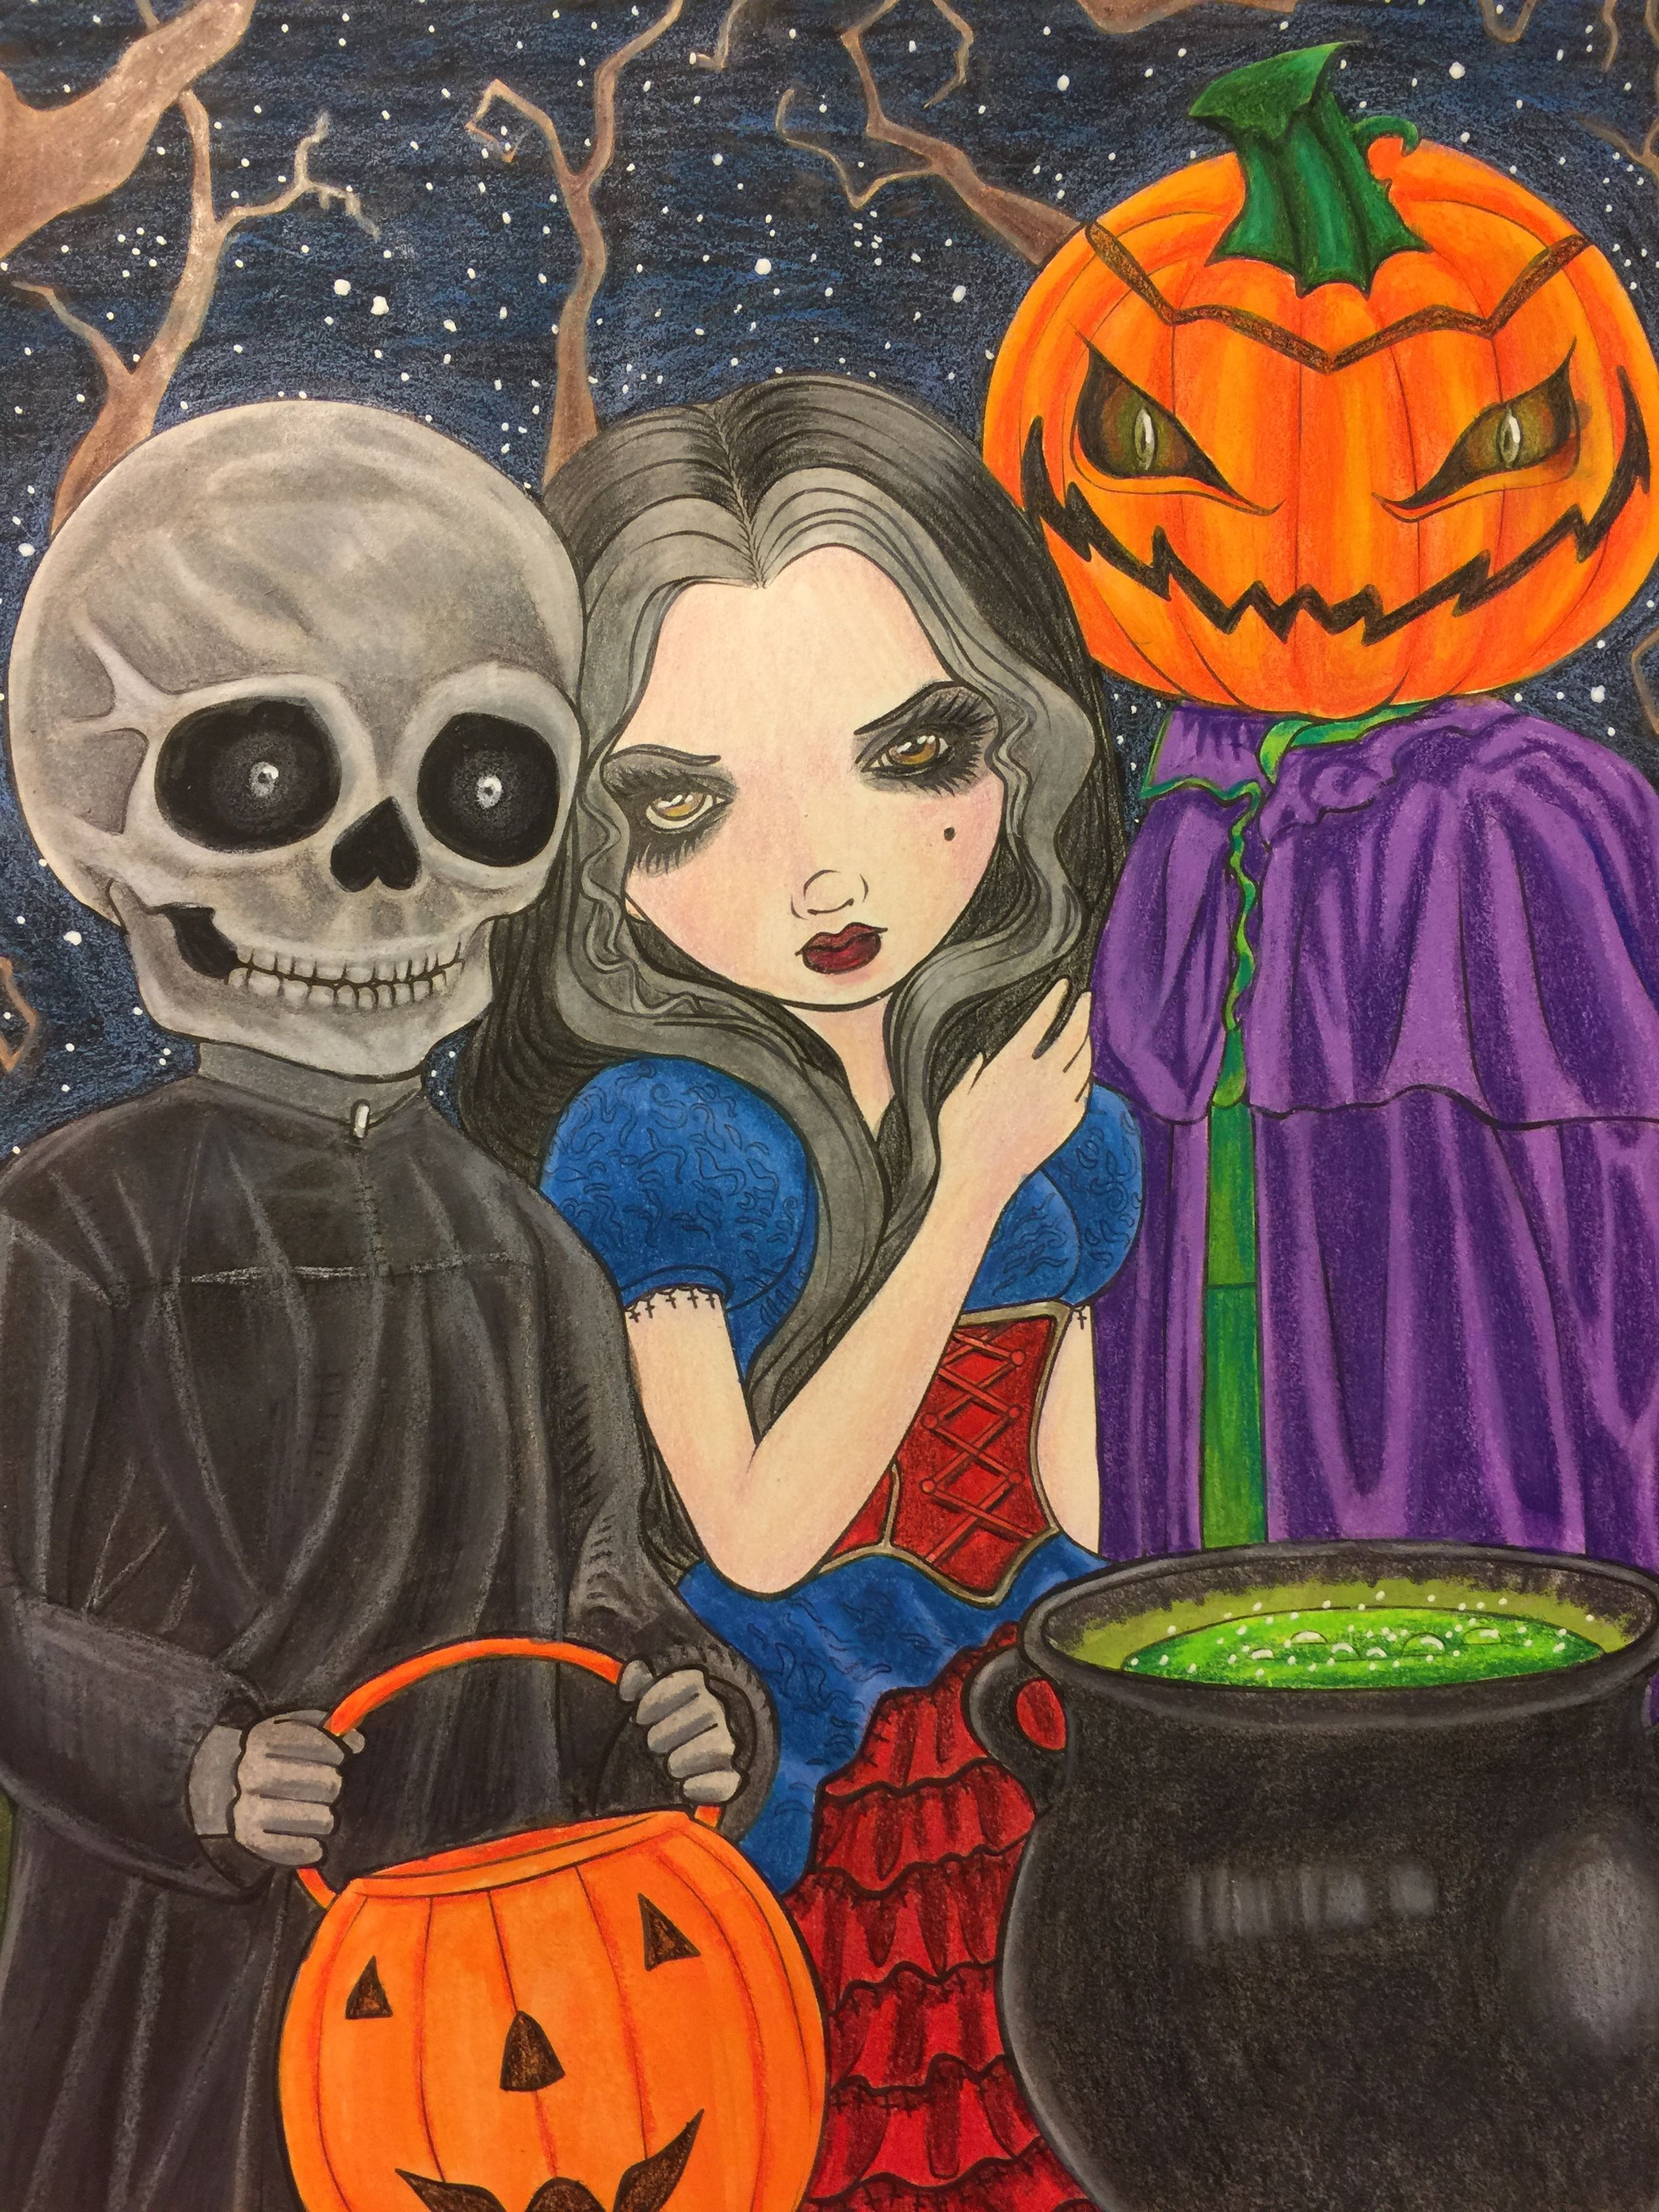 Trick or treat janice griffith adult movie torrent